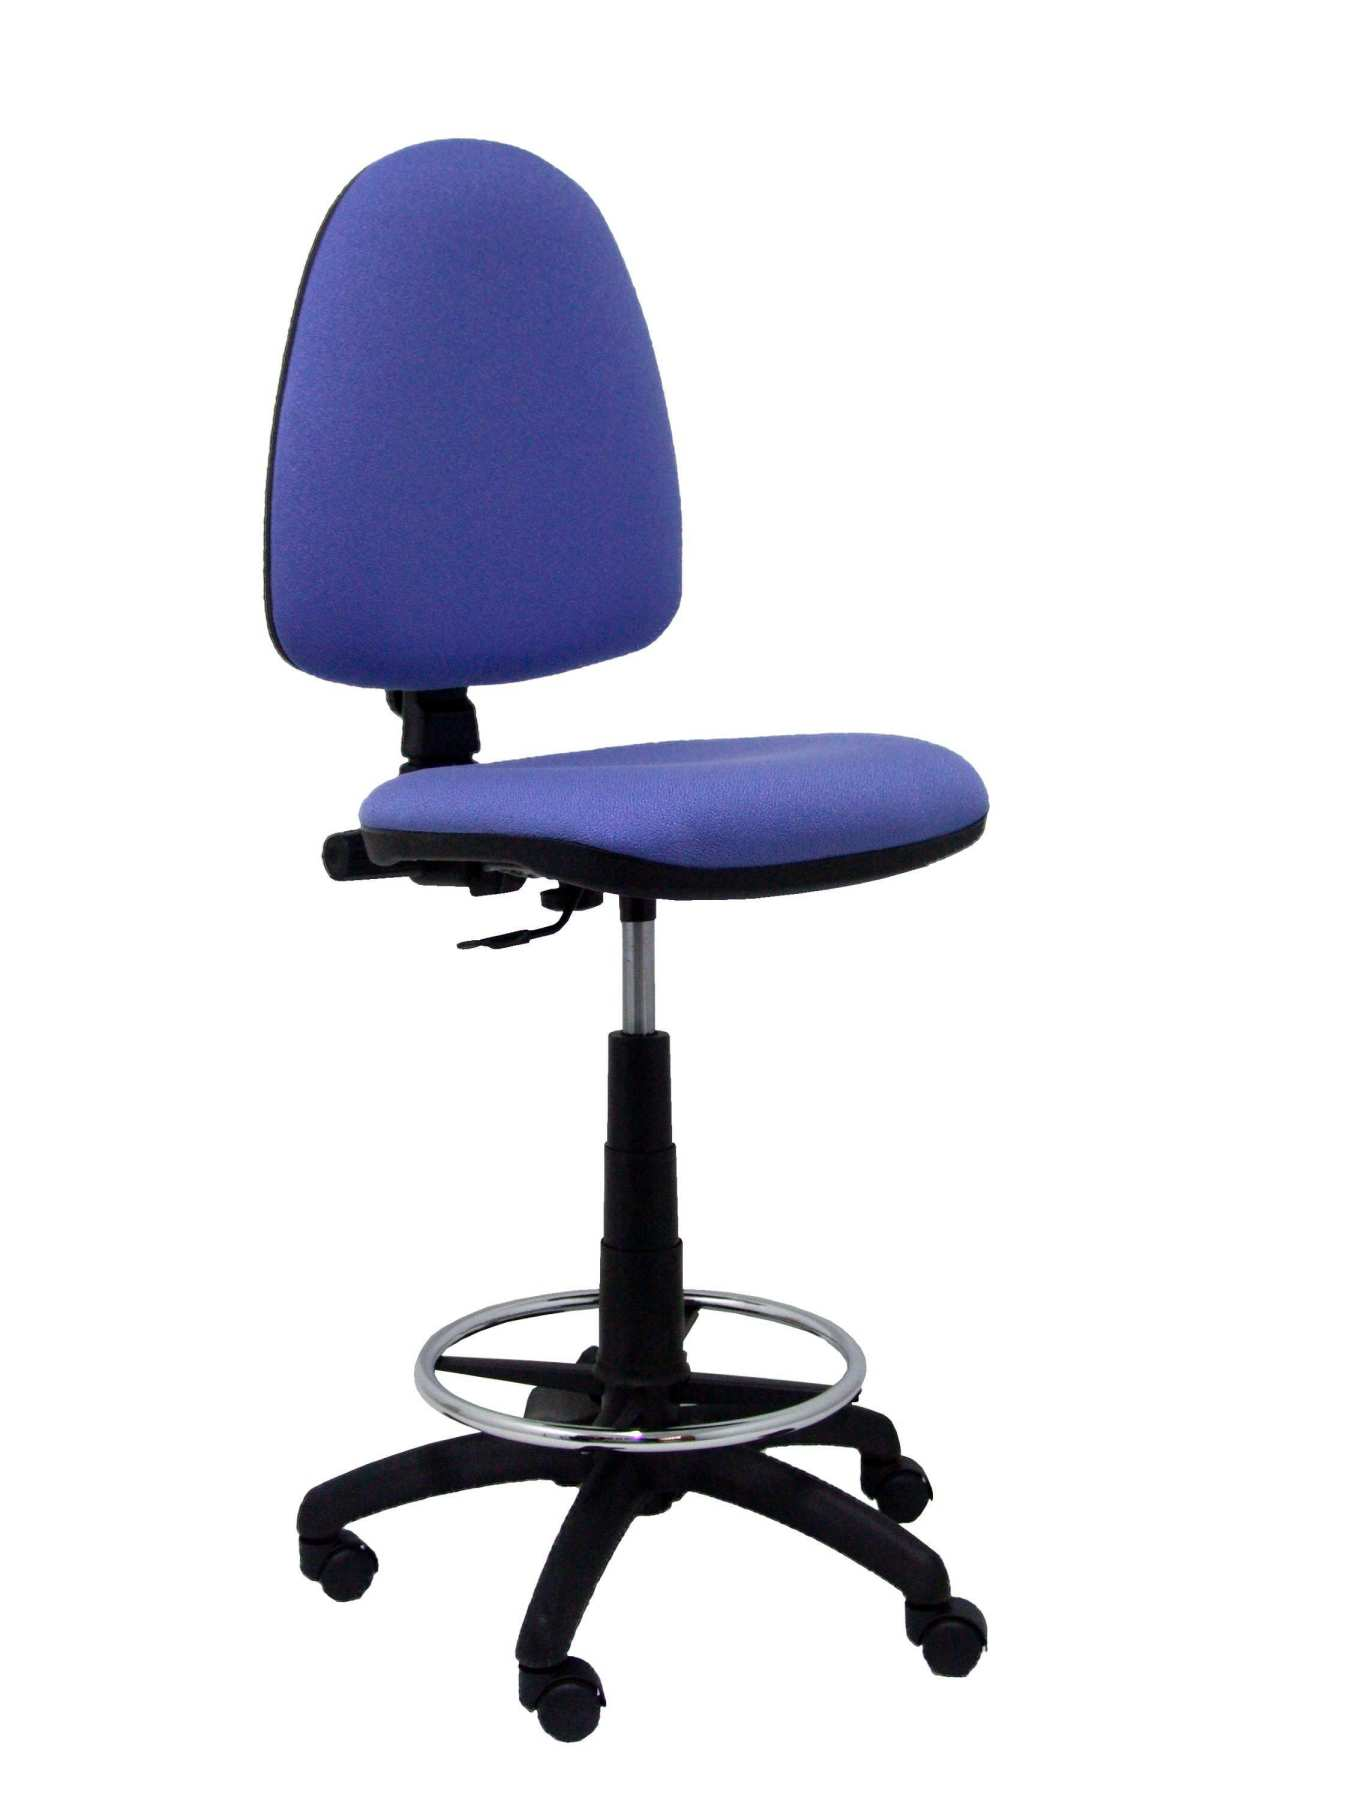 Ergonomic Stool With Mechanism Permanent Contact, Adjustable Height And Hoop Footrest Chrome-Seat And Res